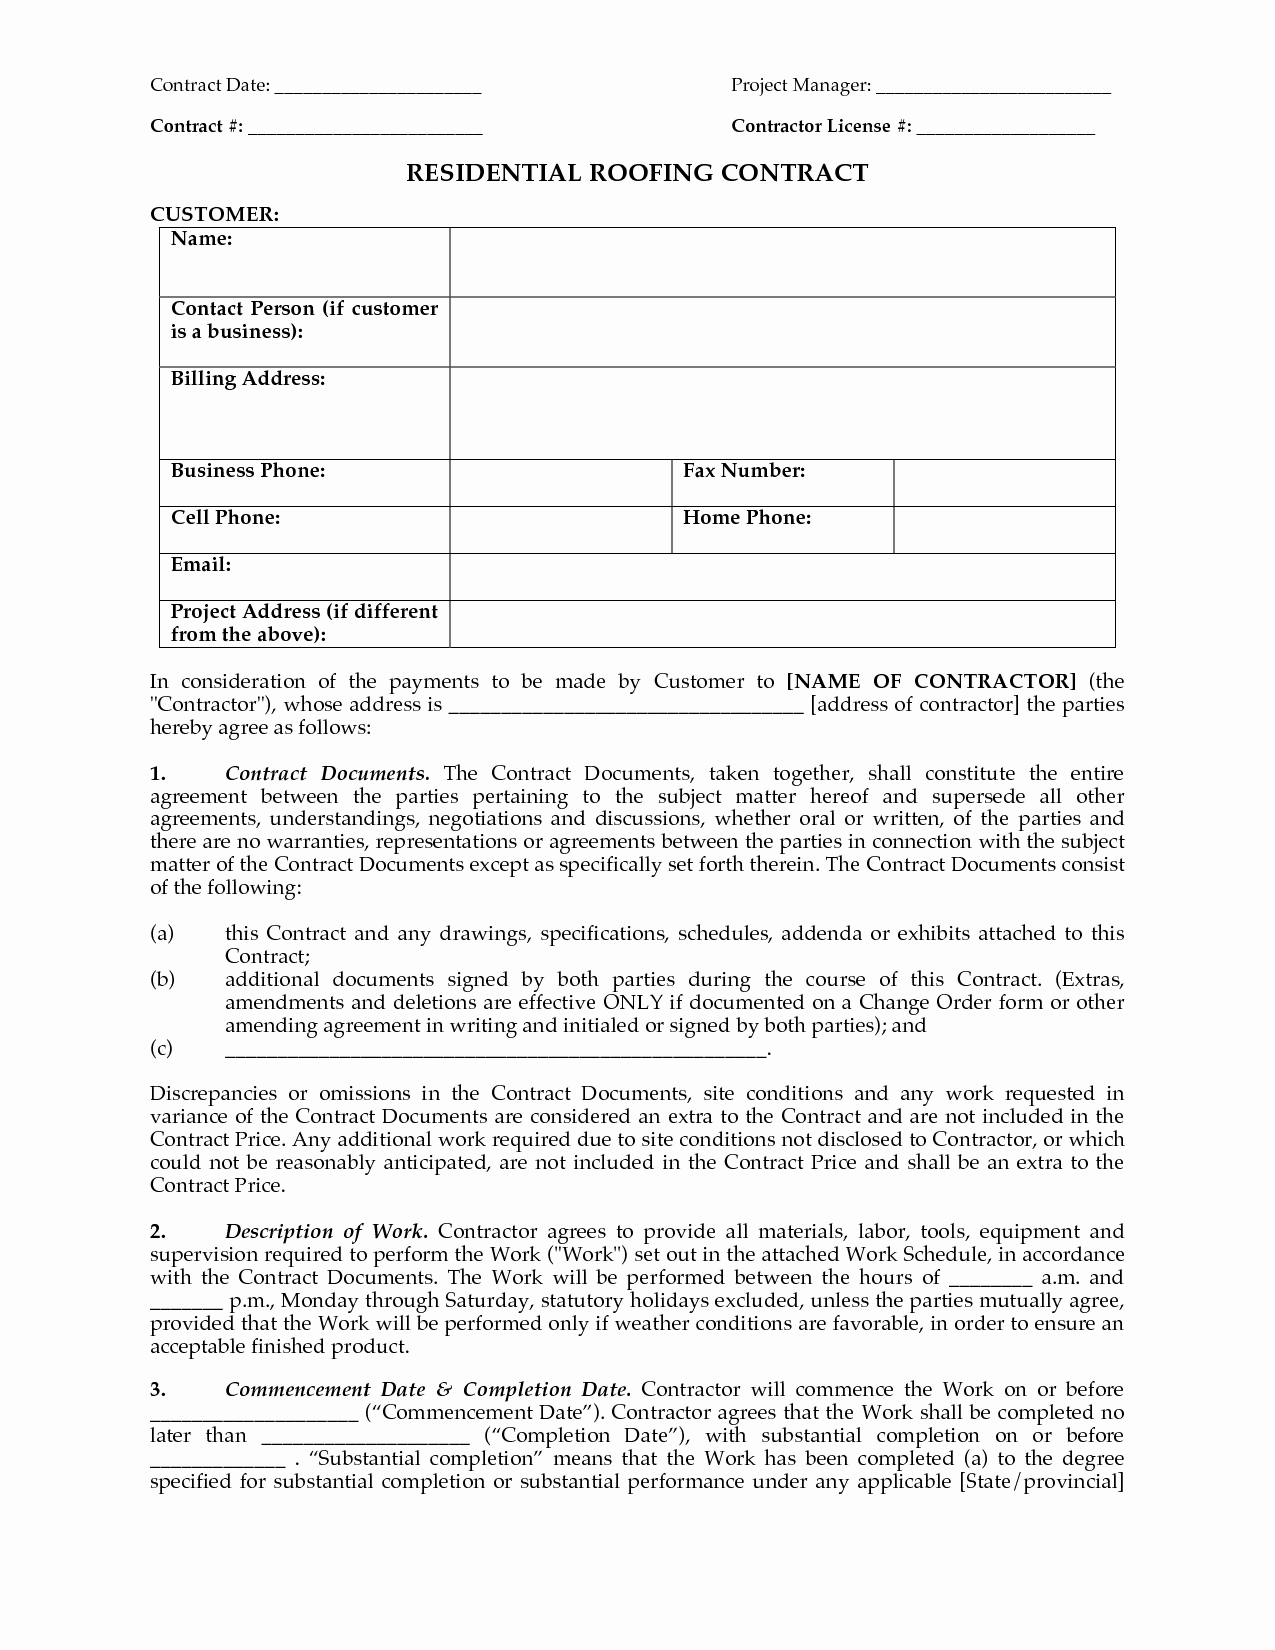 Residential Roofing Contract Contract Date Project Manager